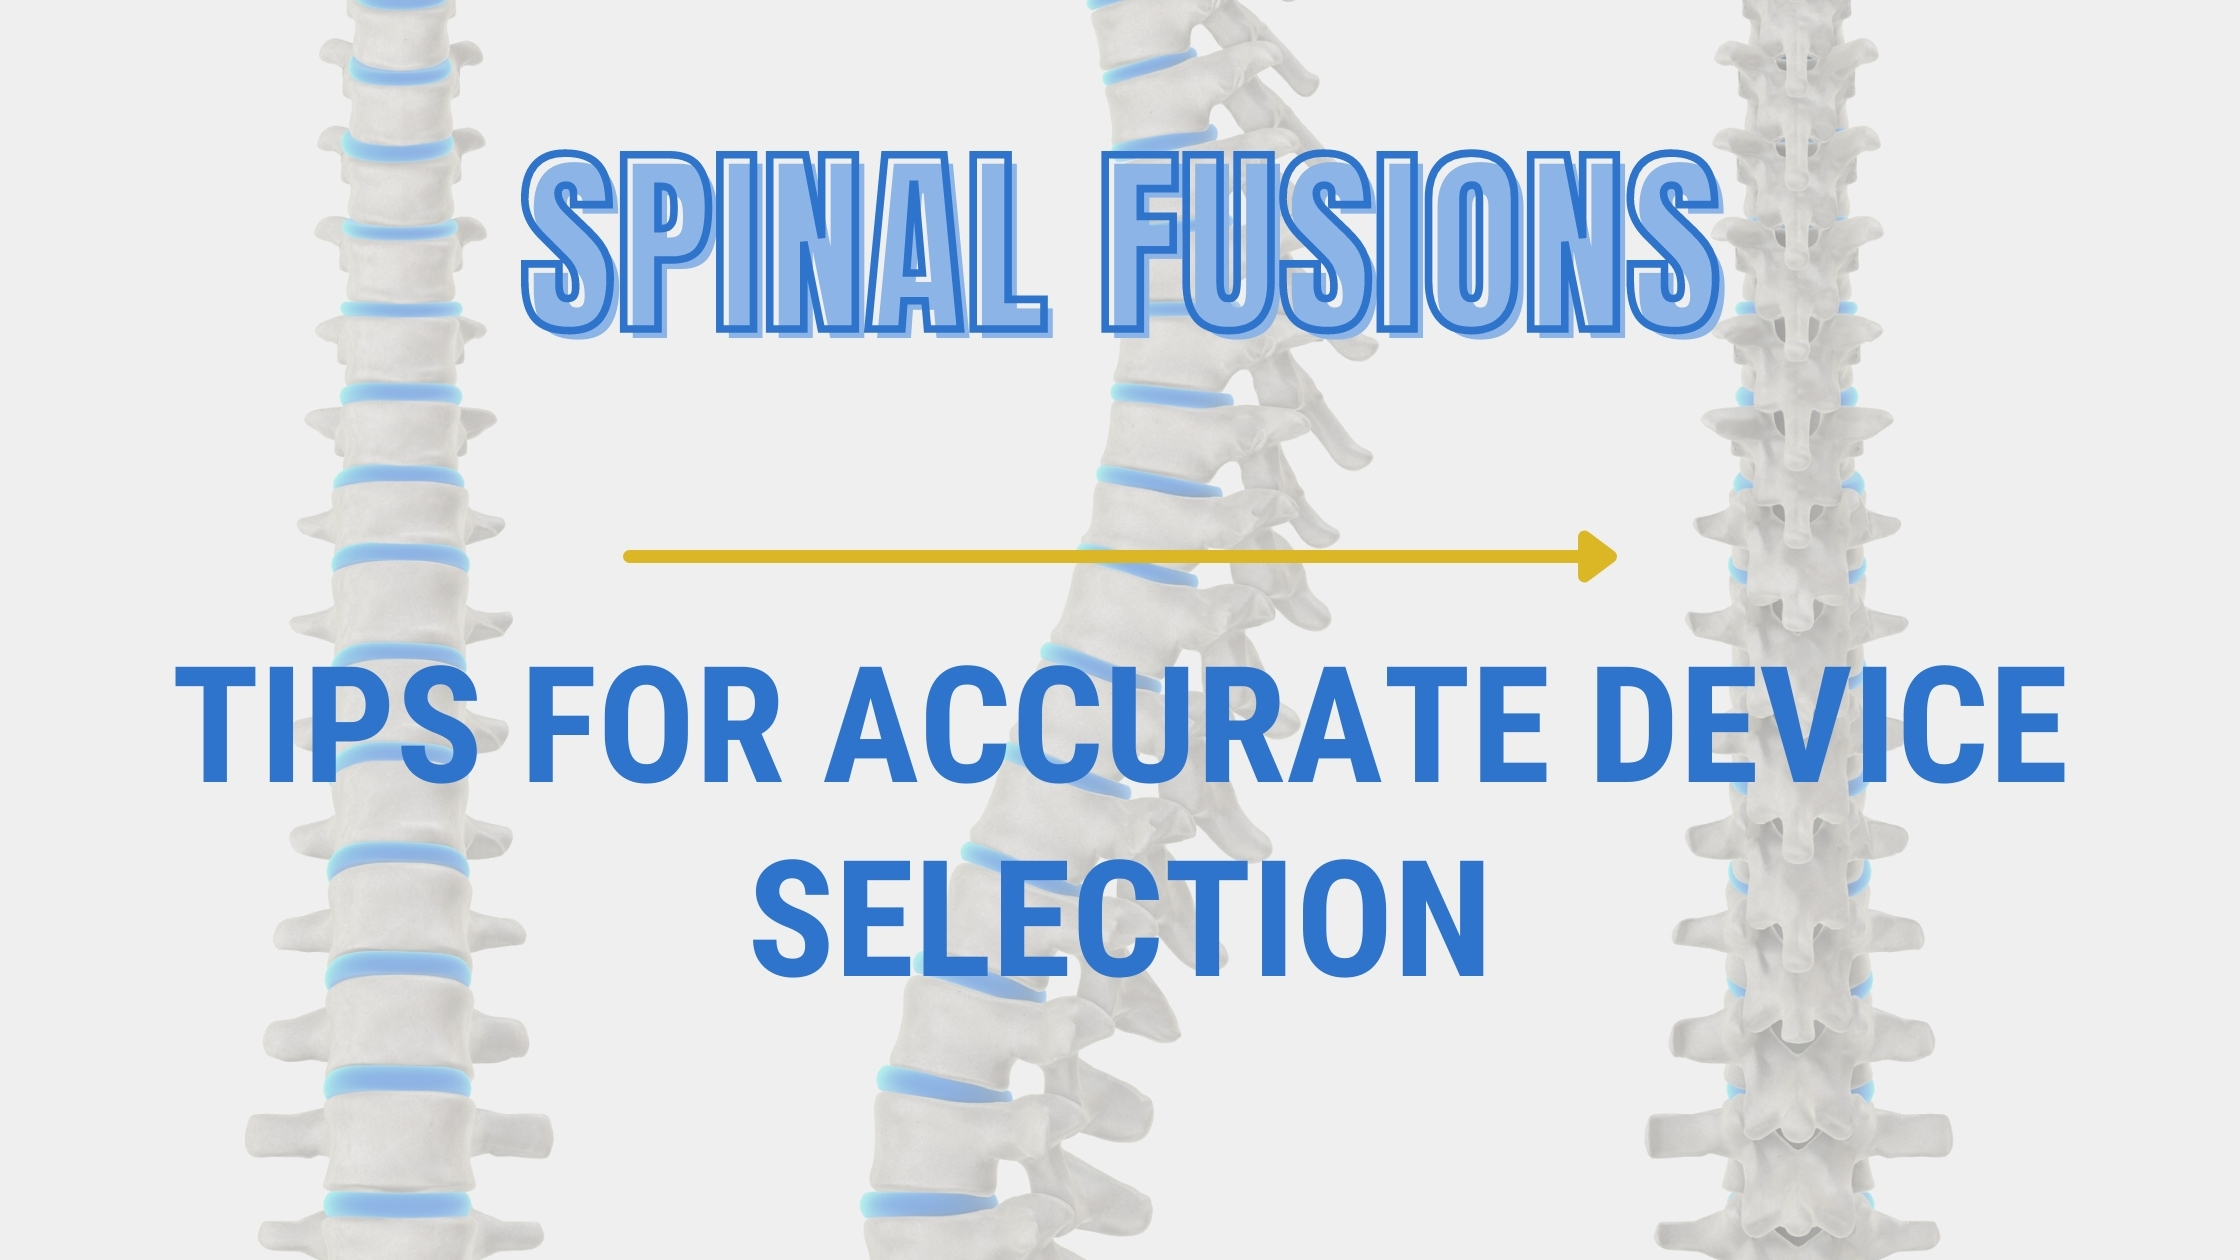 Spinal Fusion: Tips for Accurate Device Selection